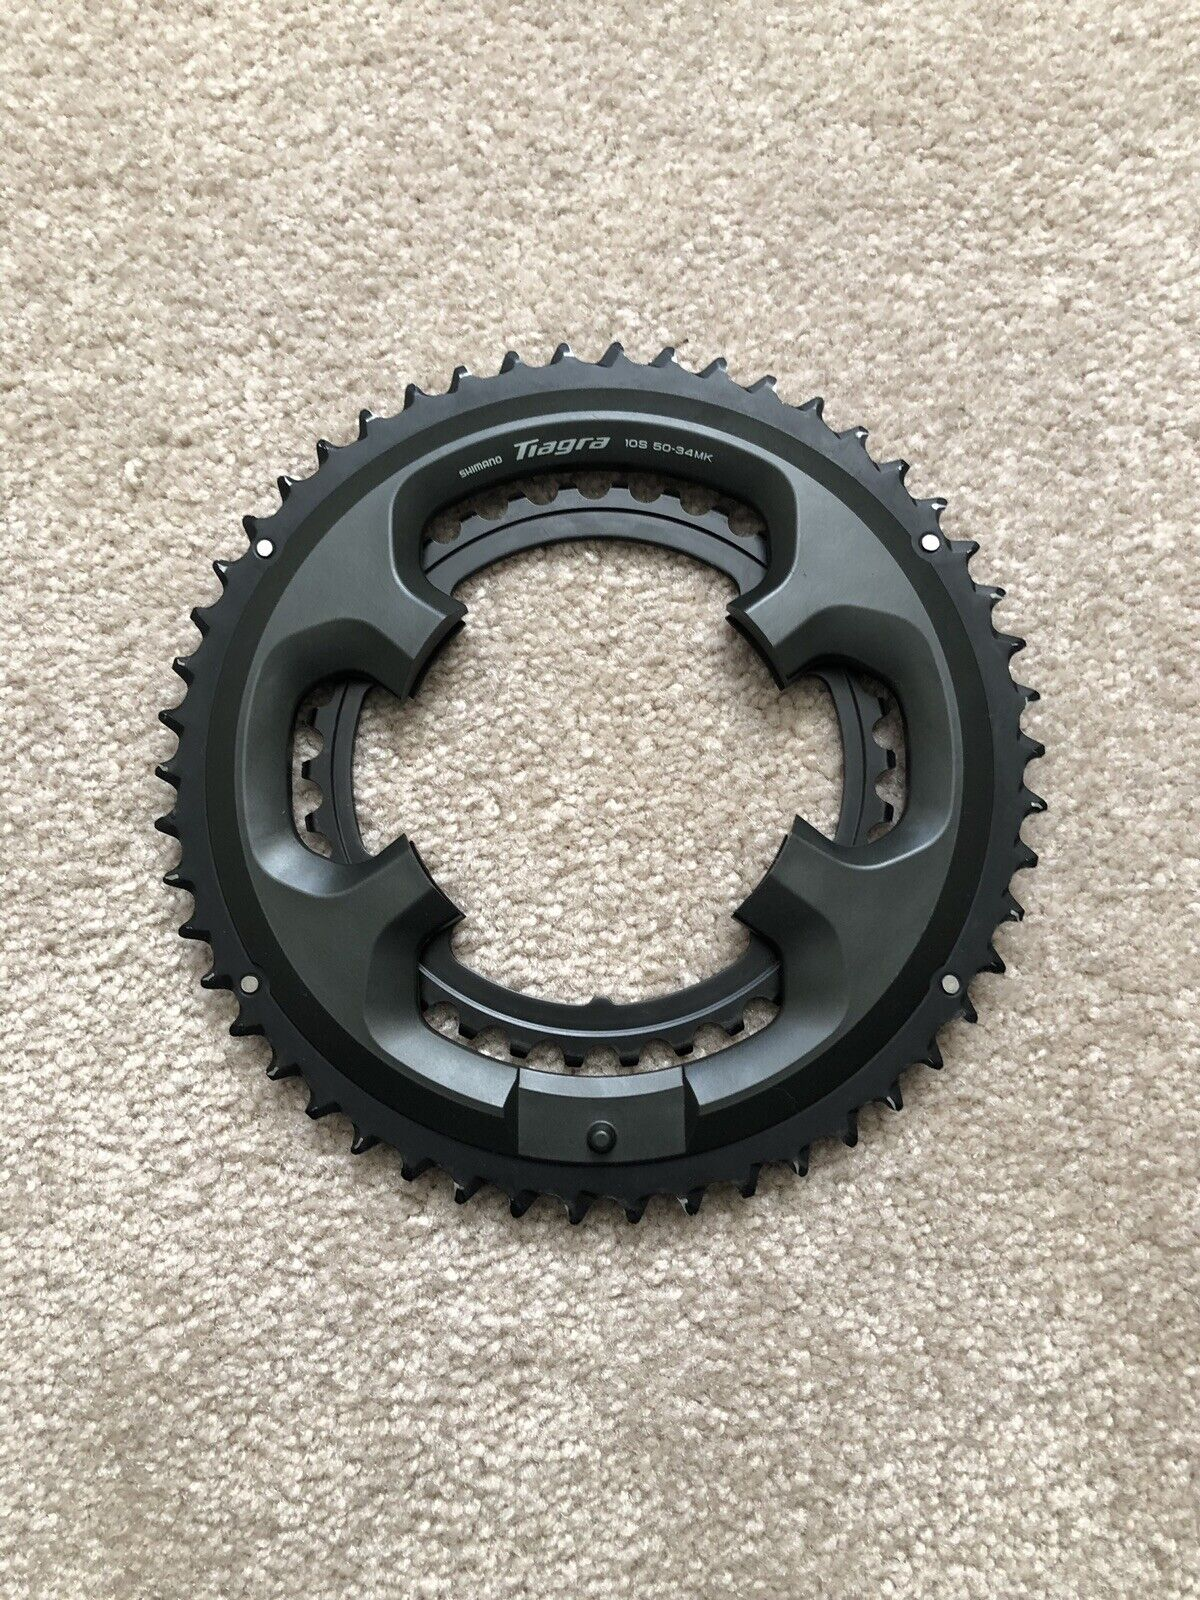 Shimano Tiagra Compact 50 34 Hollowtech II Crank Chainrings Fit 105 Road Tri TT